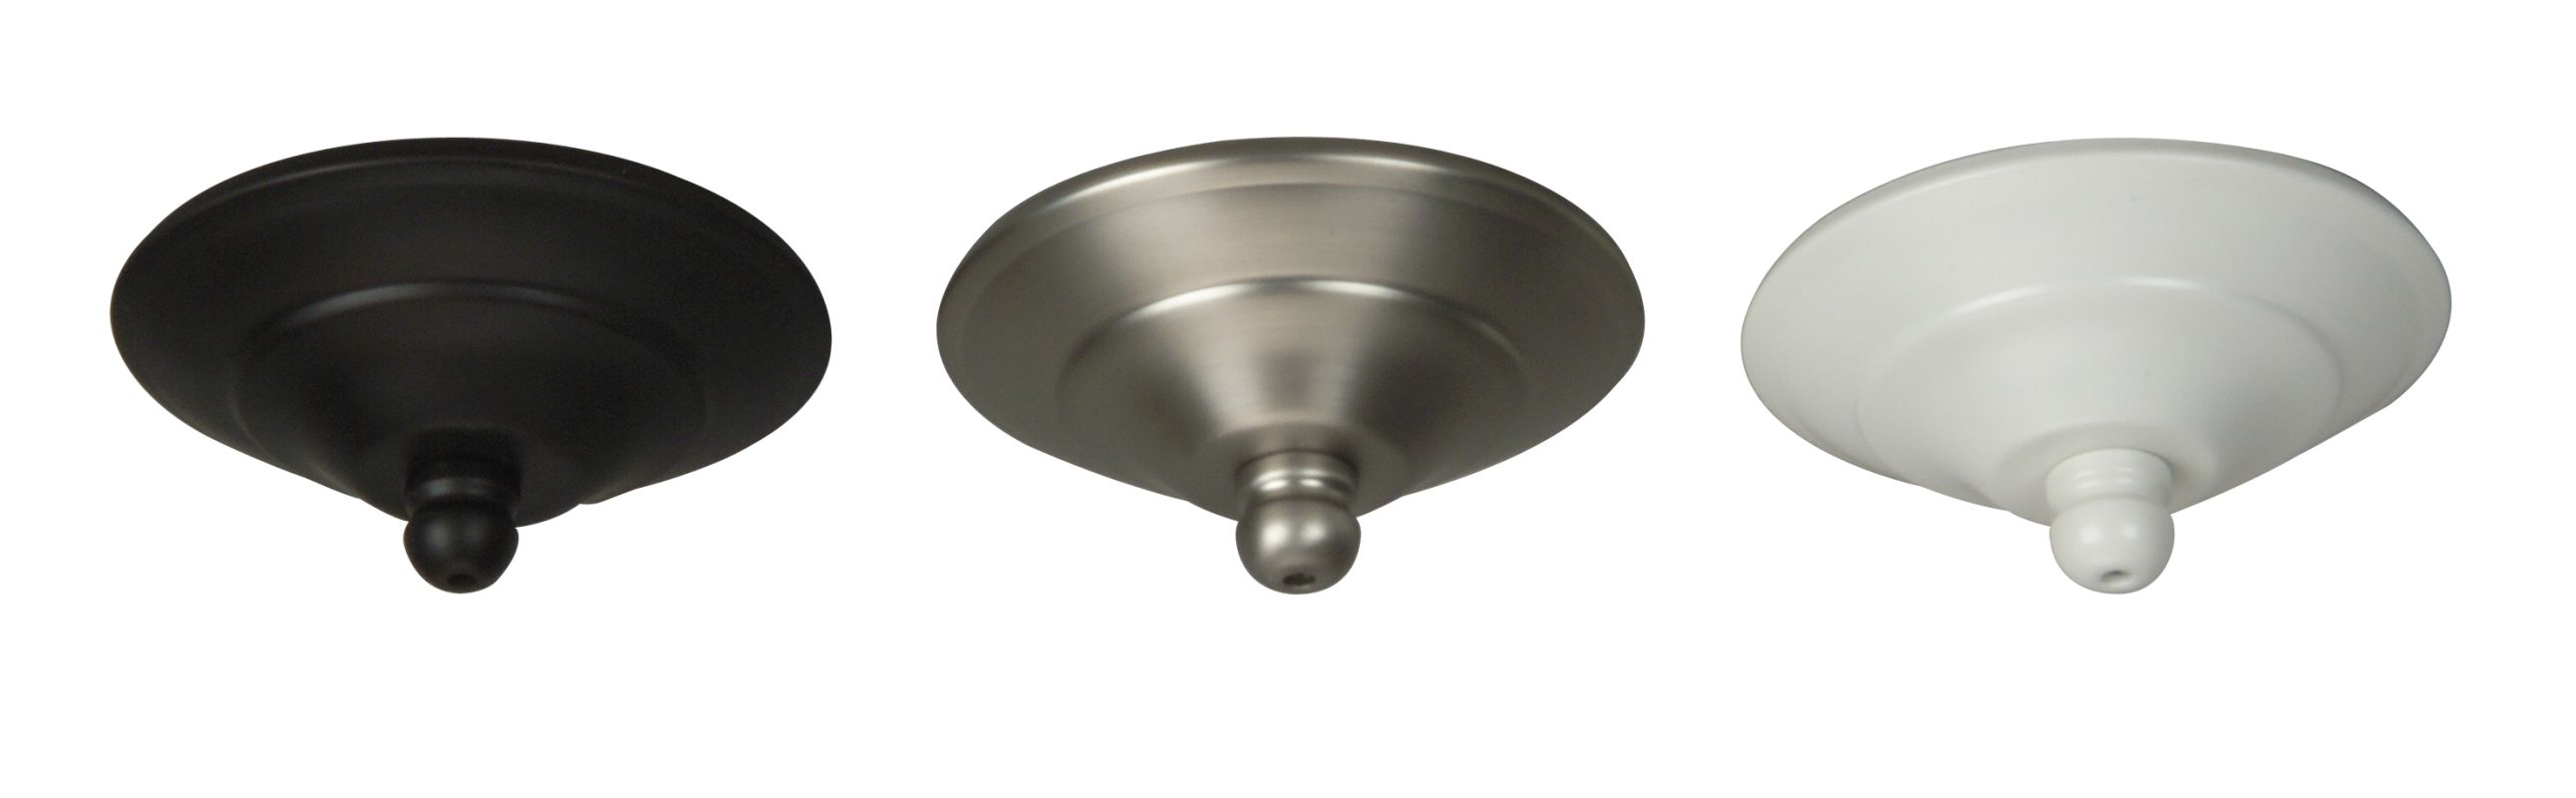 Craftmade RP-3801 Replacement Metal Cap for Craftmade Ceiling Fan Bowl